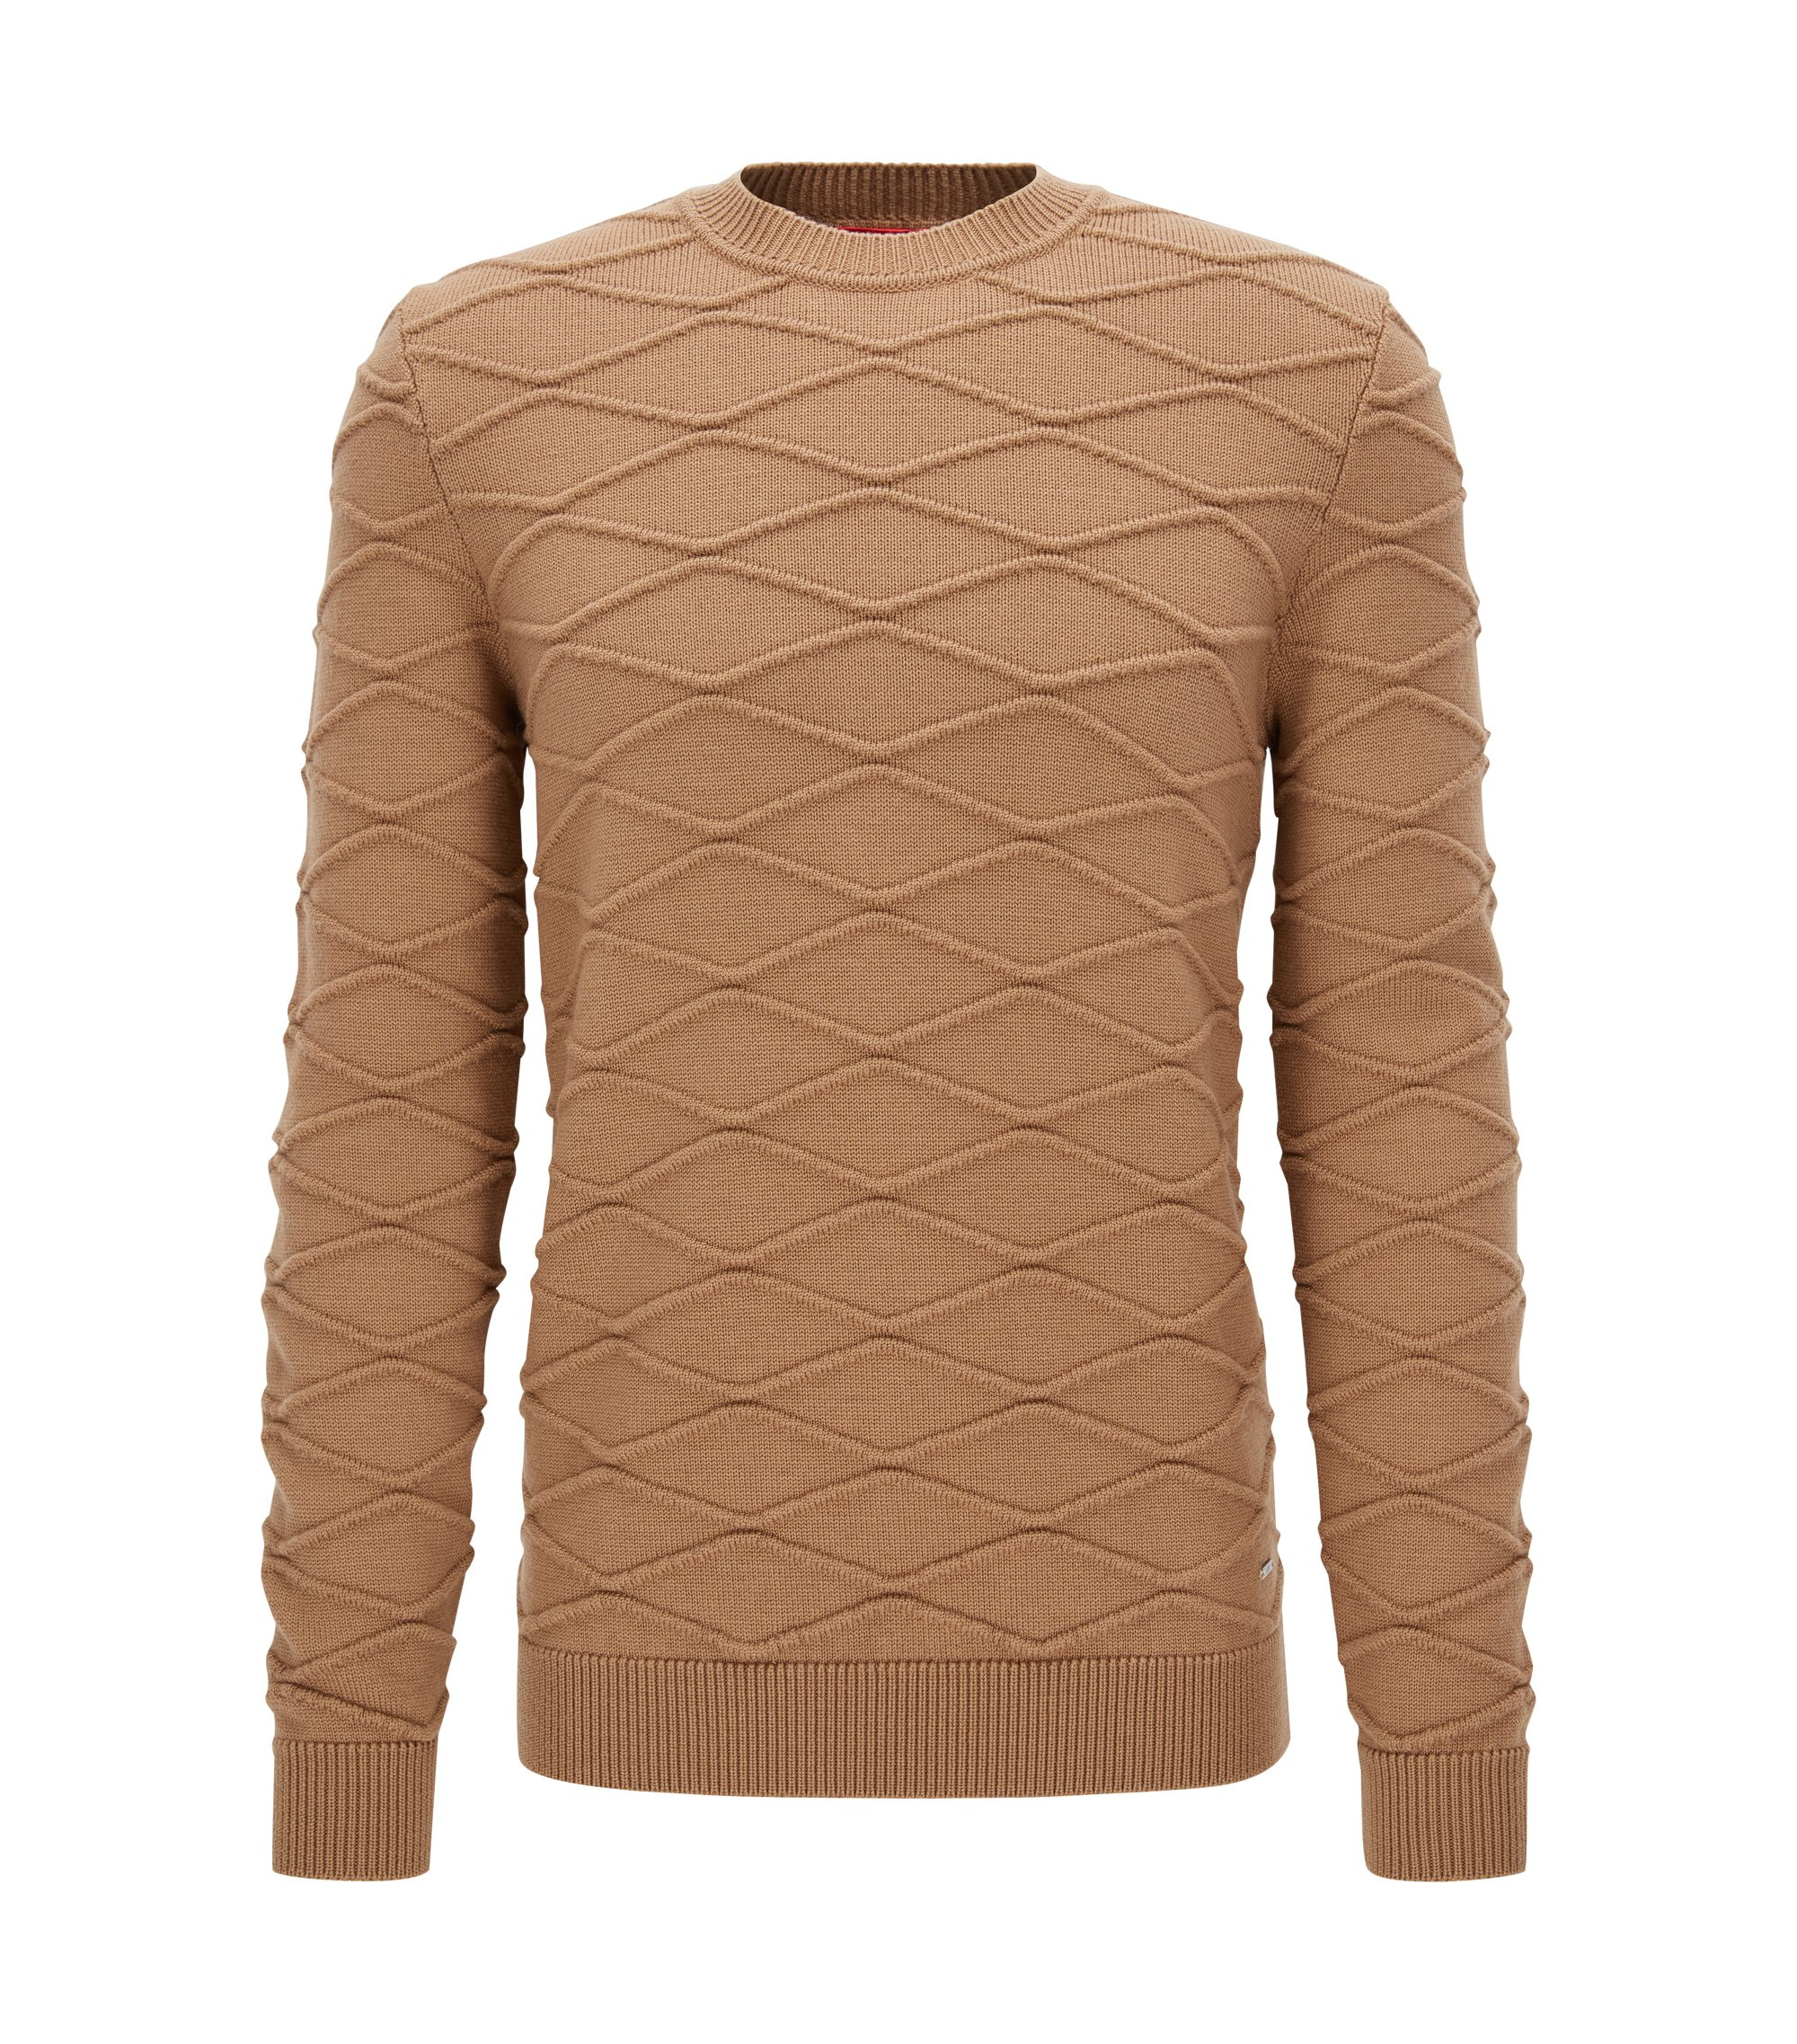 Virgin Wool Sweater | Svave, Brown